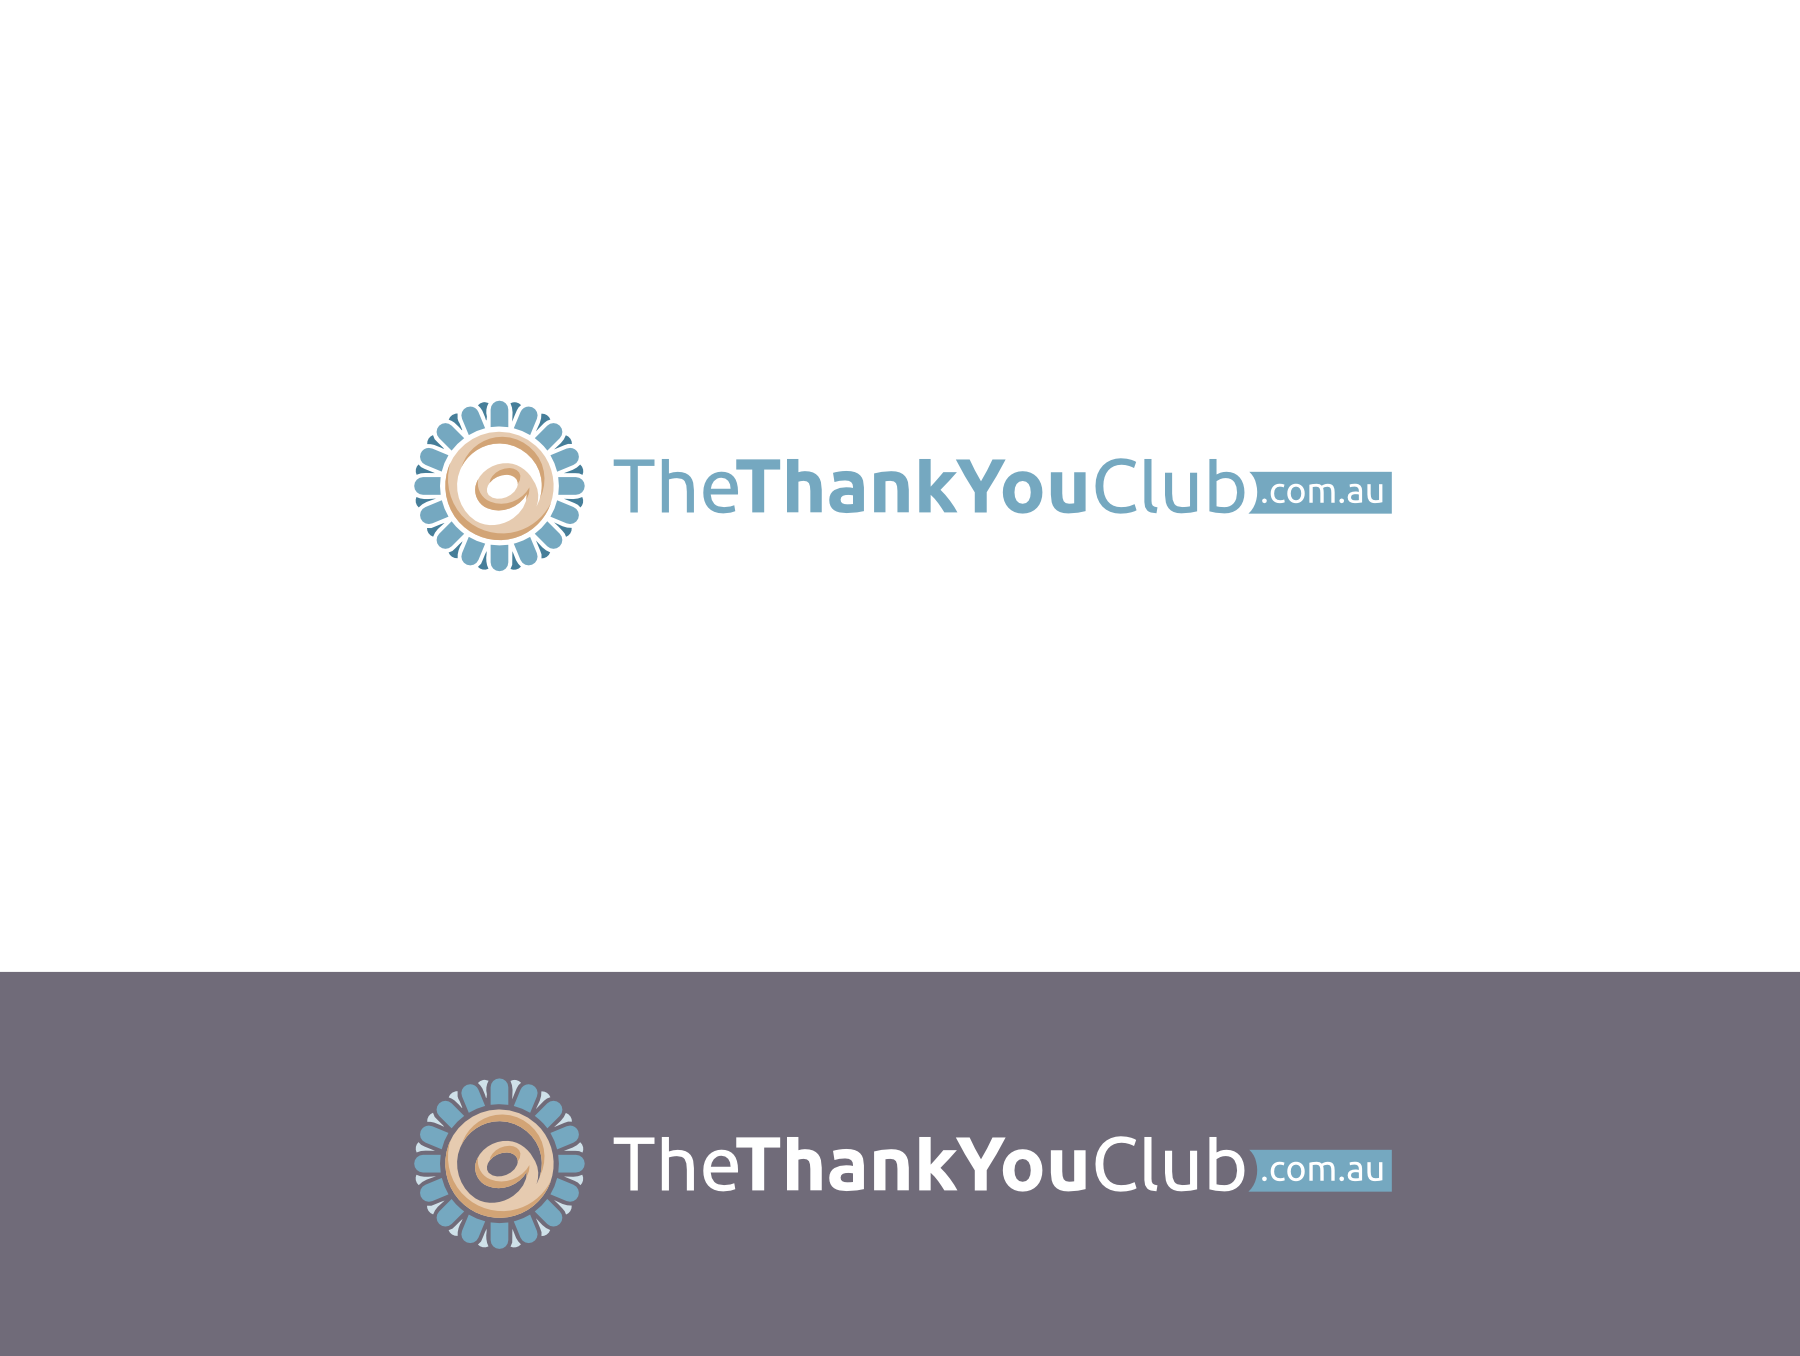 Logo design for charity workers social and rewards club